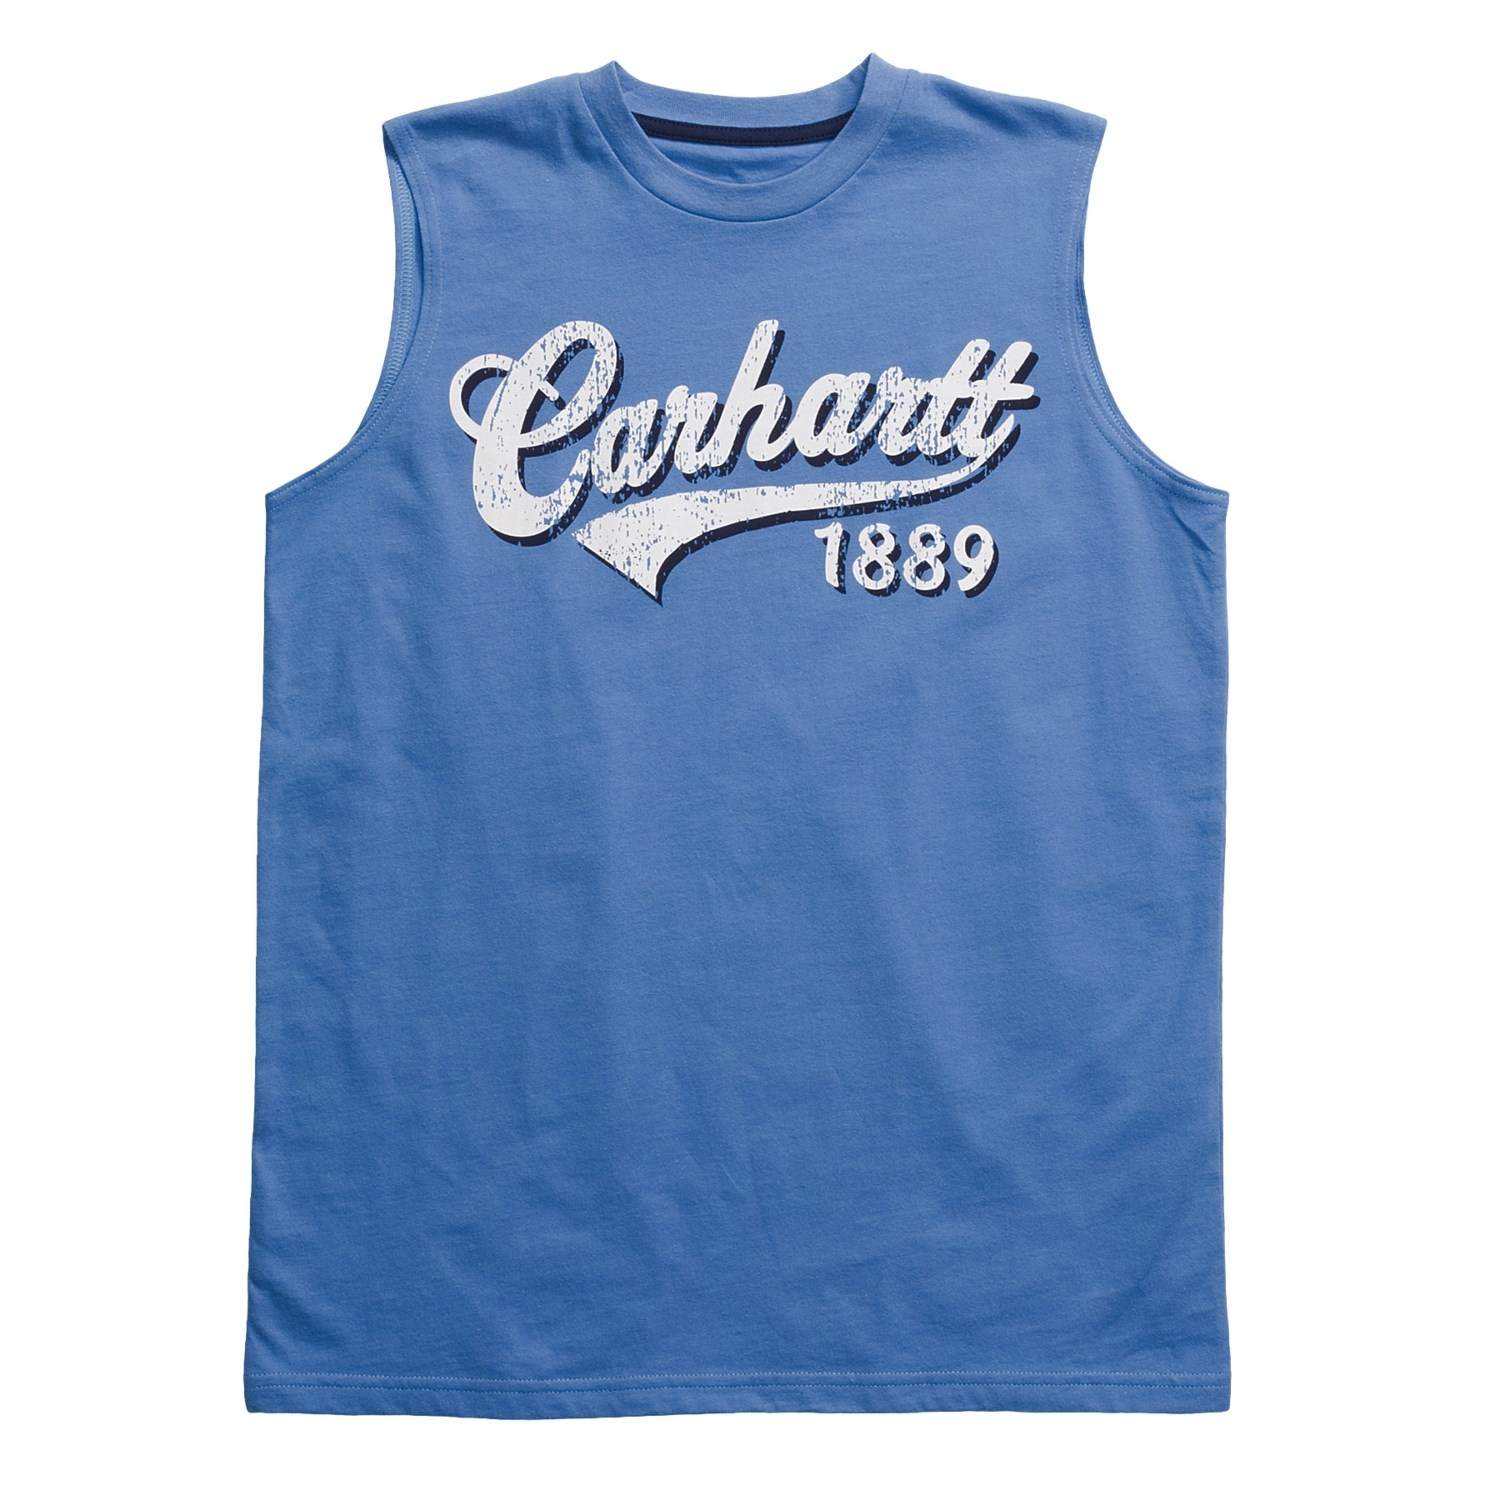 Carhartt script graphic t shirt sleeveless for boys for Sleeveless graphic t shirts